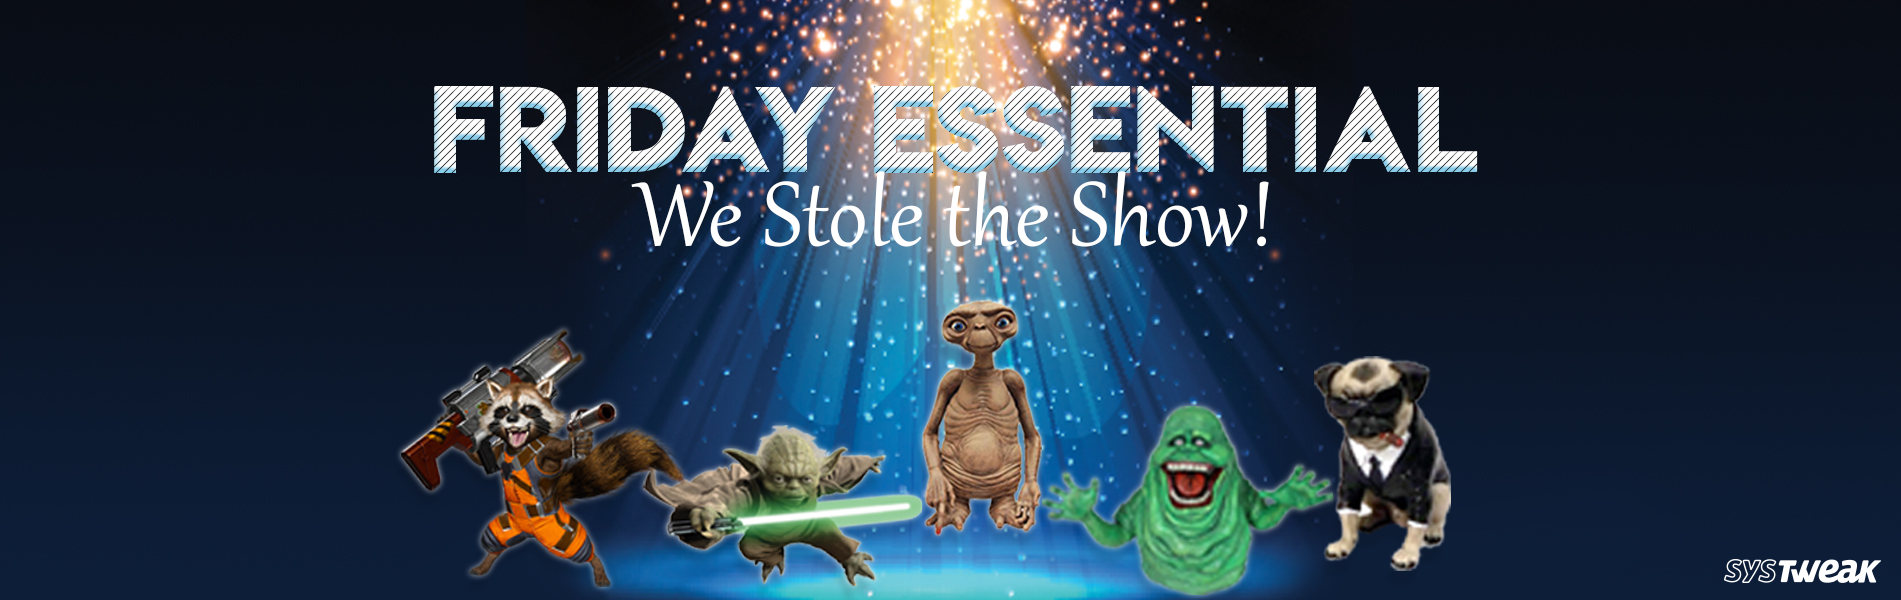 Friday Essentials: 5 Sci-Fi Creatures That Stole The Show